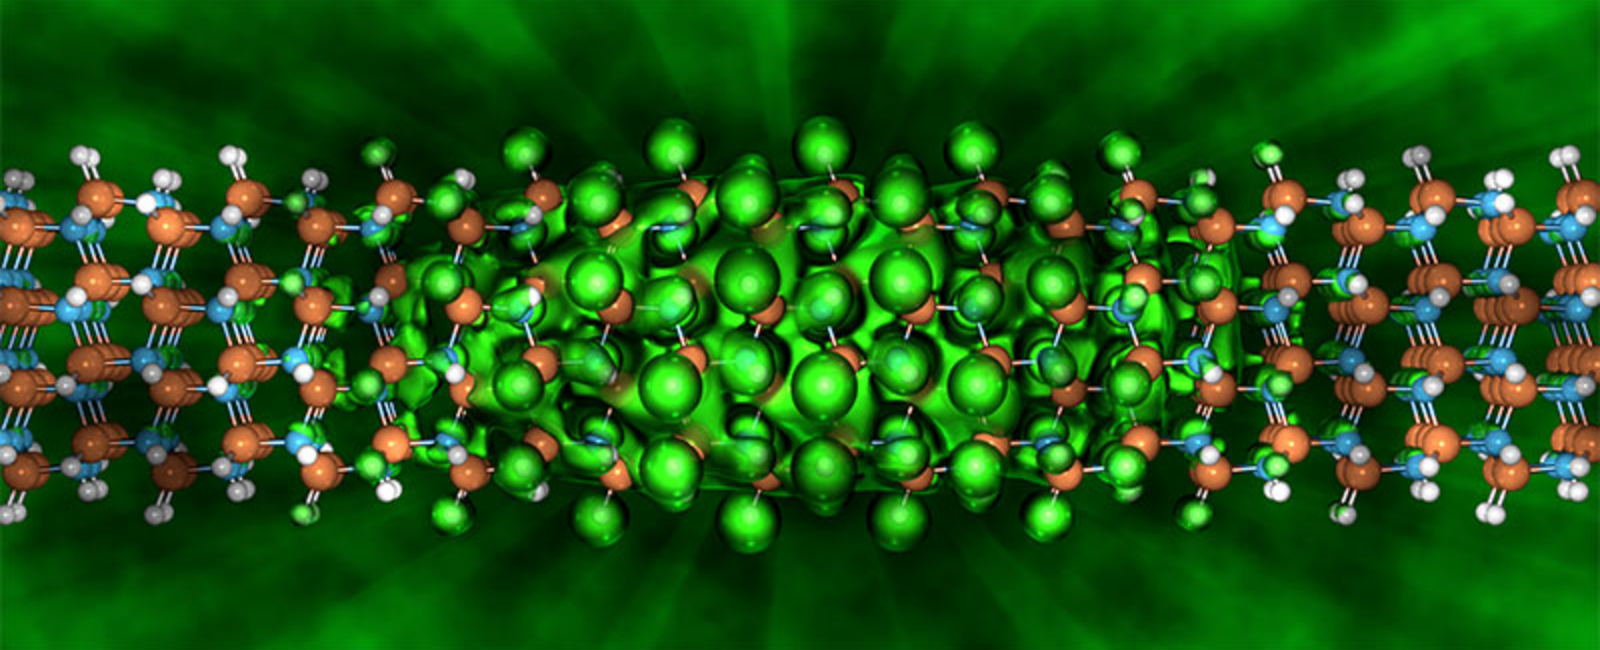 An electron's location probability distribution shown in bright green and confined by the wire.